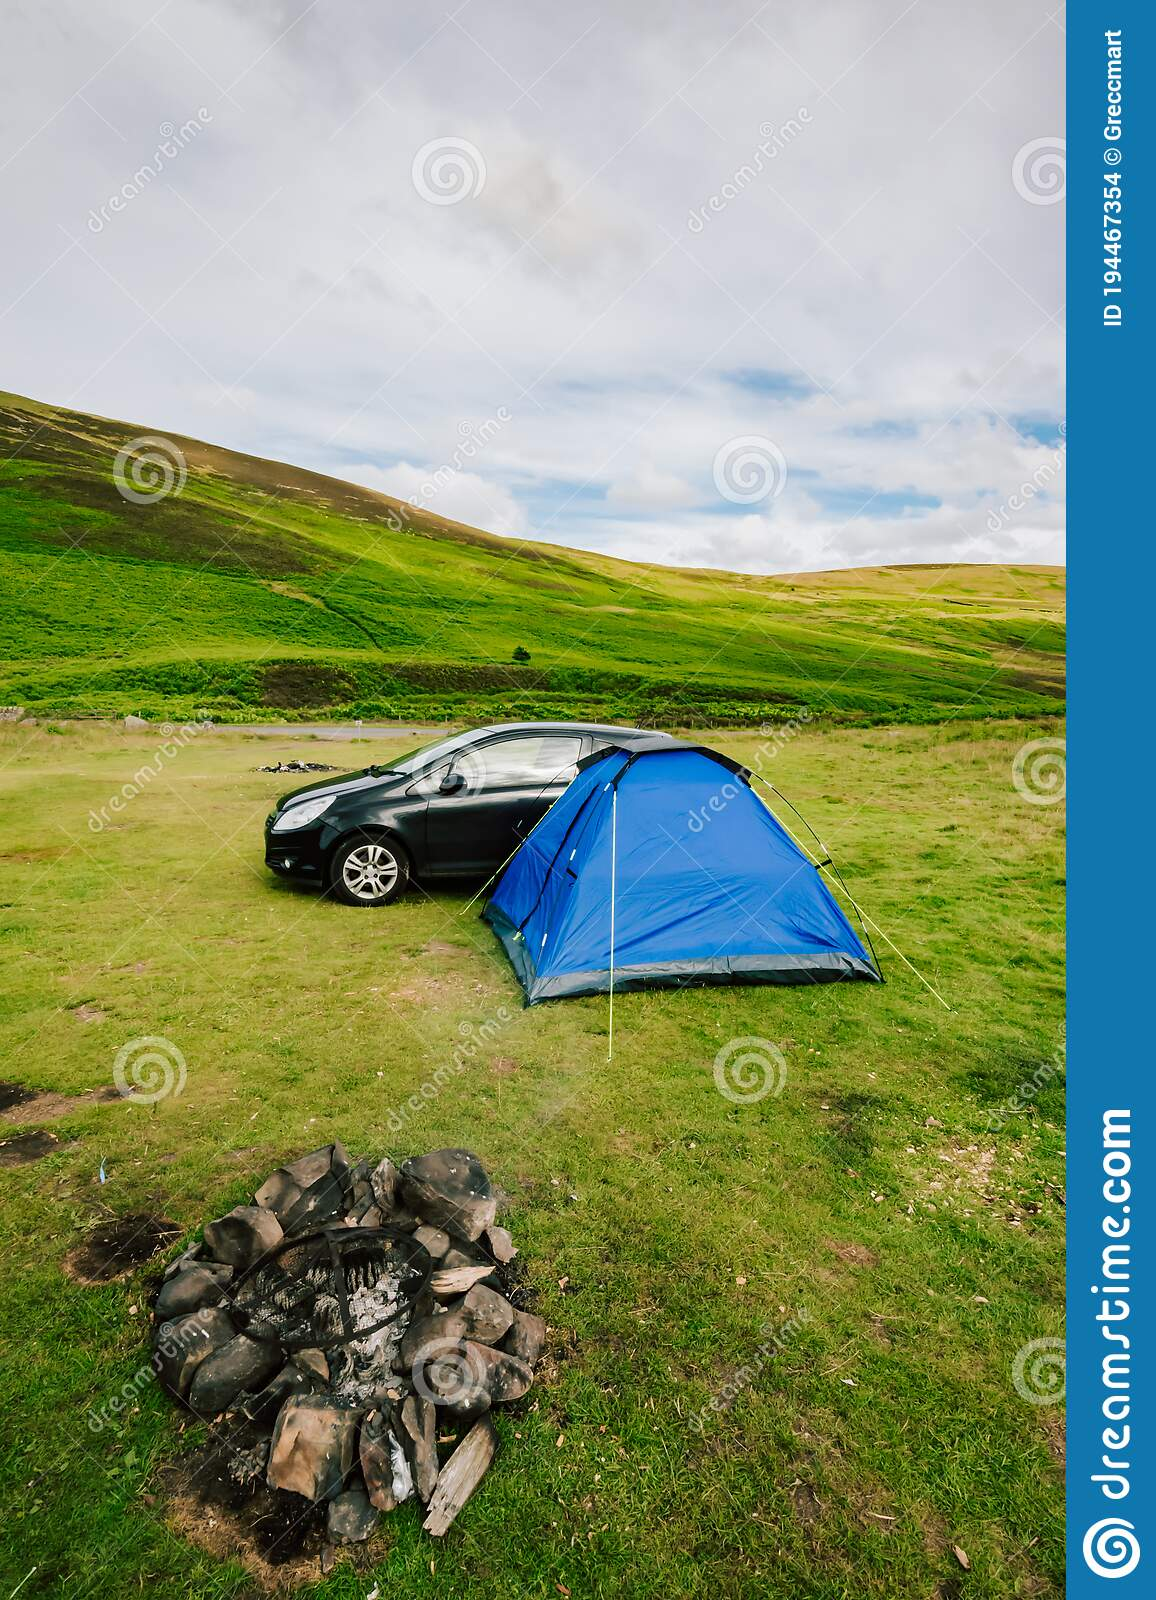 19 819 Wild Car Photos Free Royalty Free Stock Photos From Dreamstime